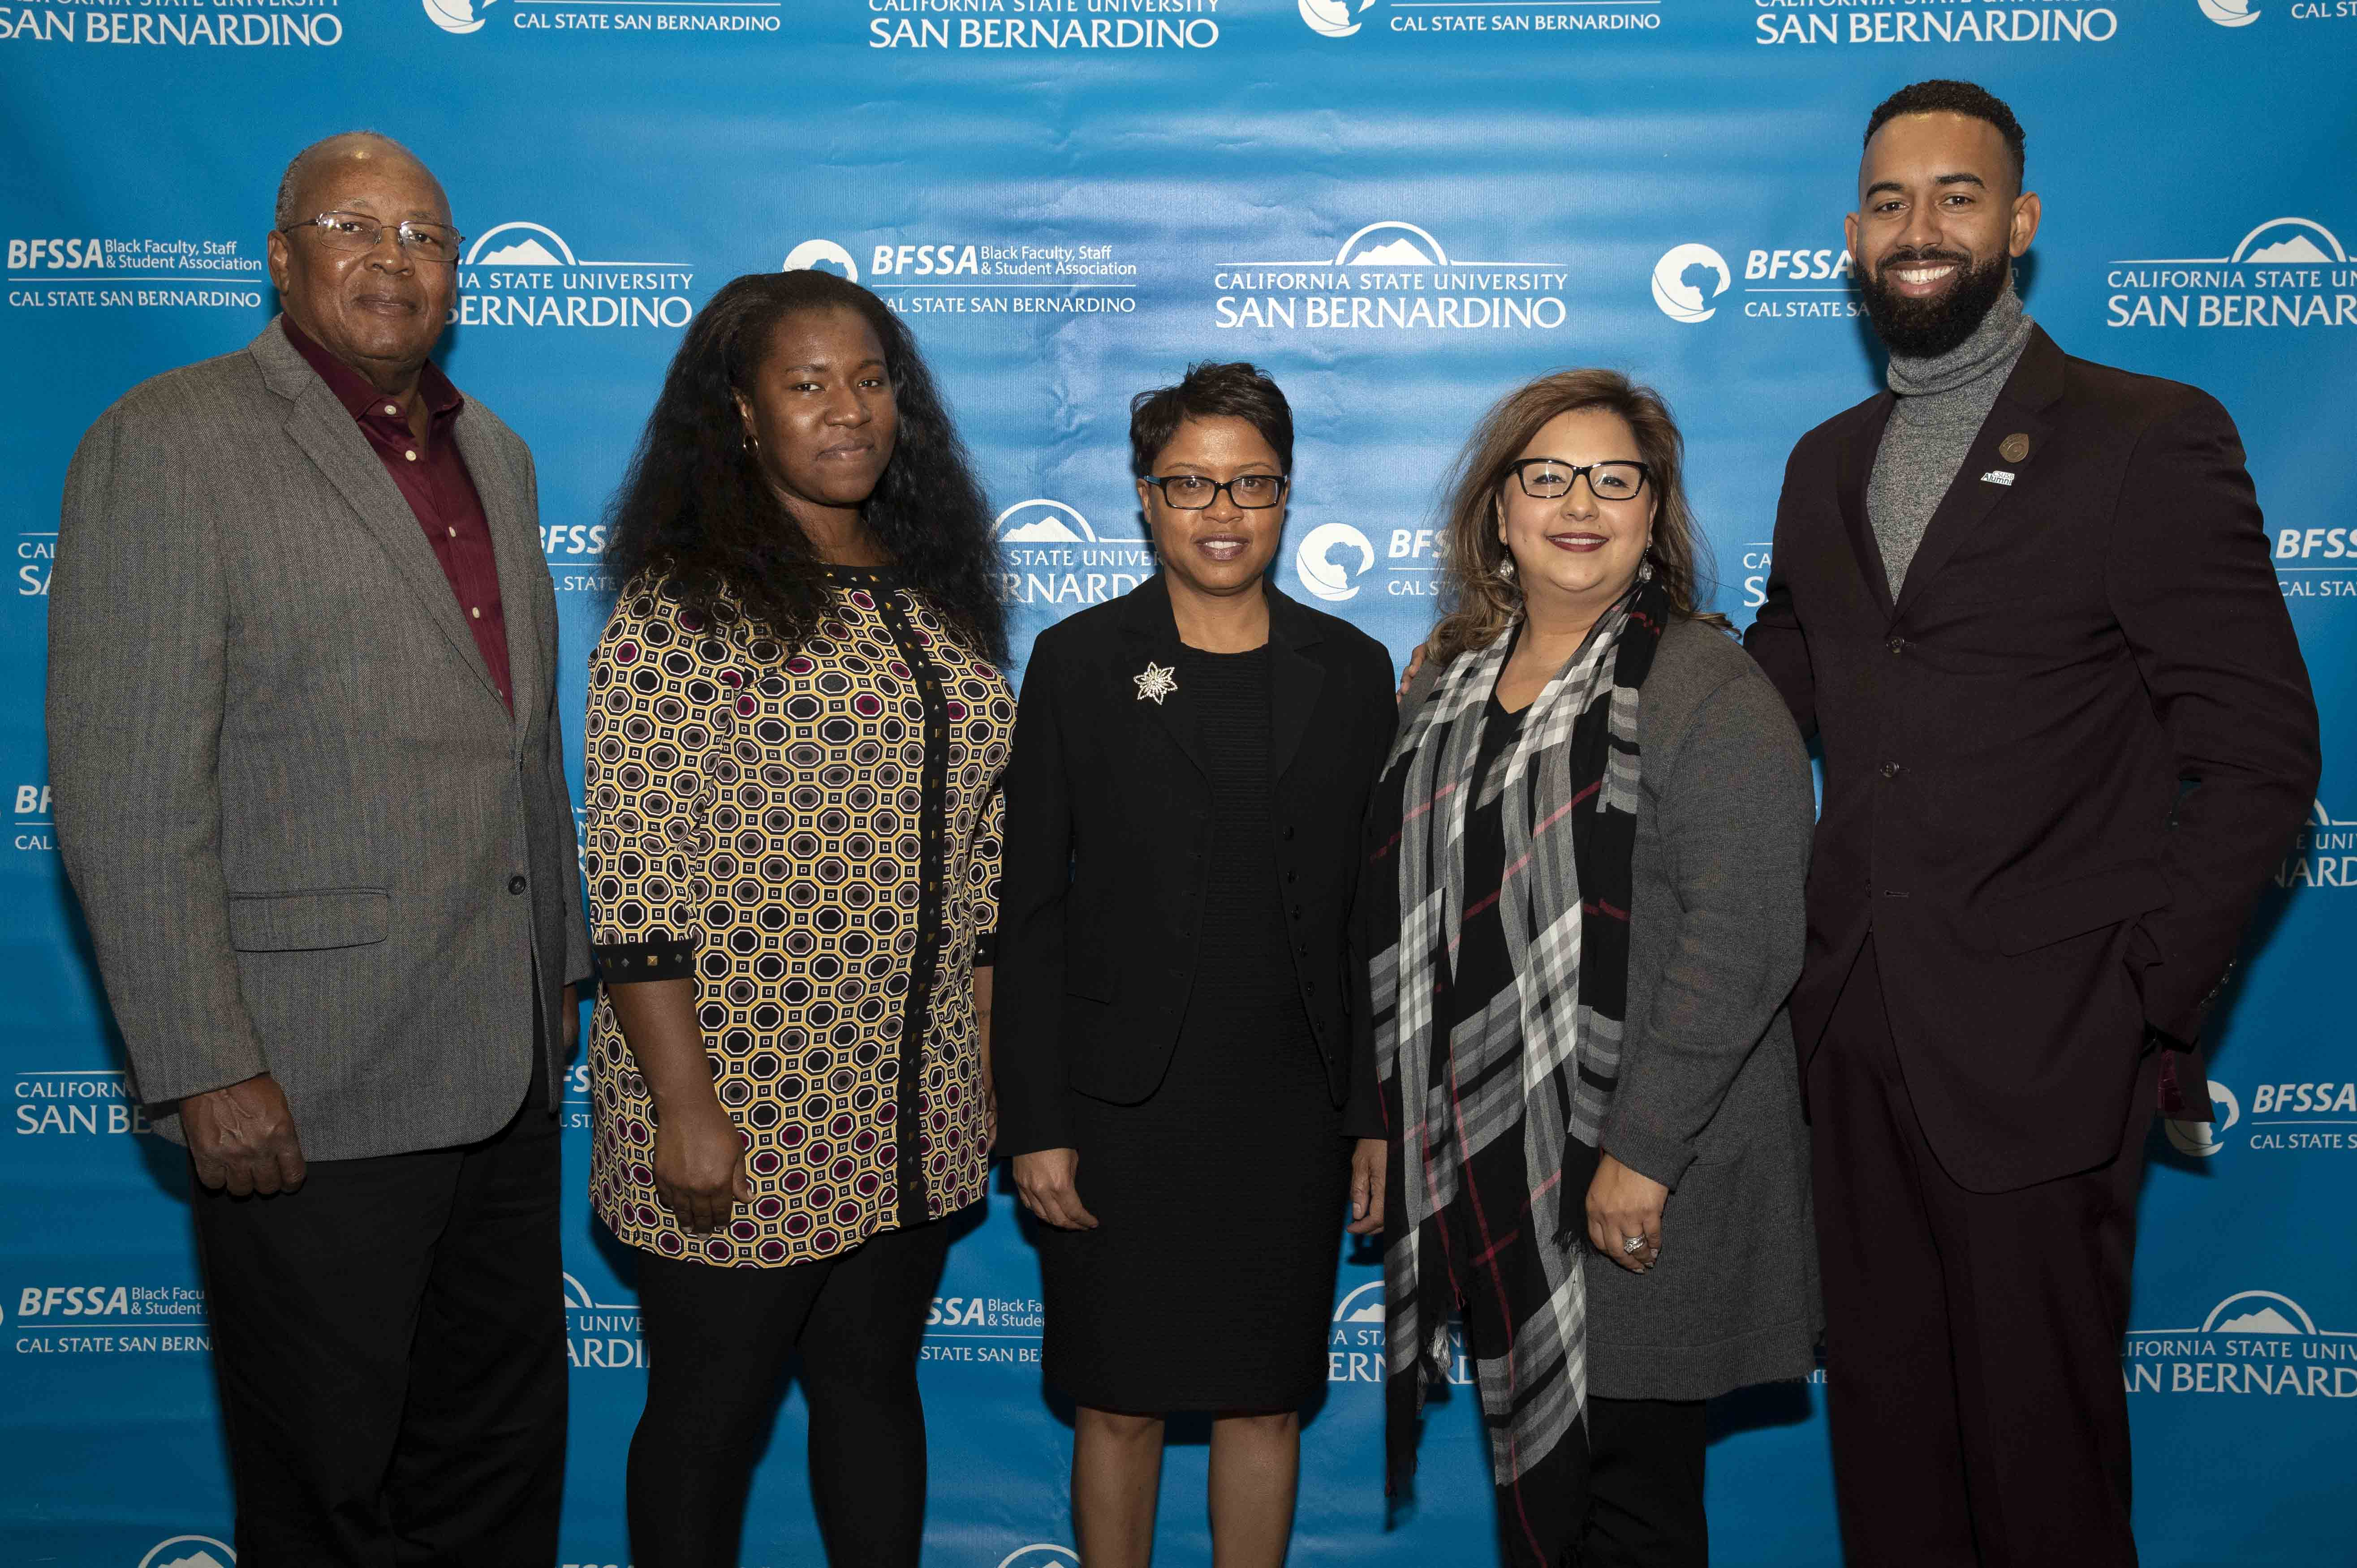 Pioneer honorees, from left: Tyrone Bookman, Staff Award; Paulette Brown-Hinds, Alumni Award; Veronica Ramirez Amerson, Lorraine Frost Ally Award recipient; and Tyree Vance, Emerging Leader.